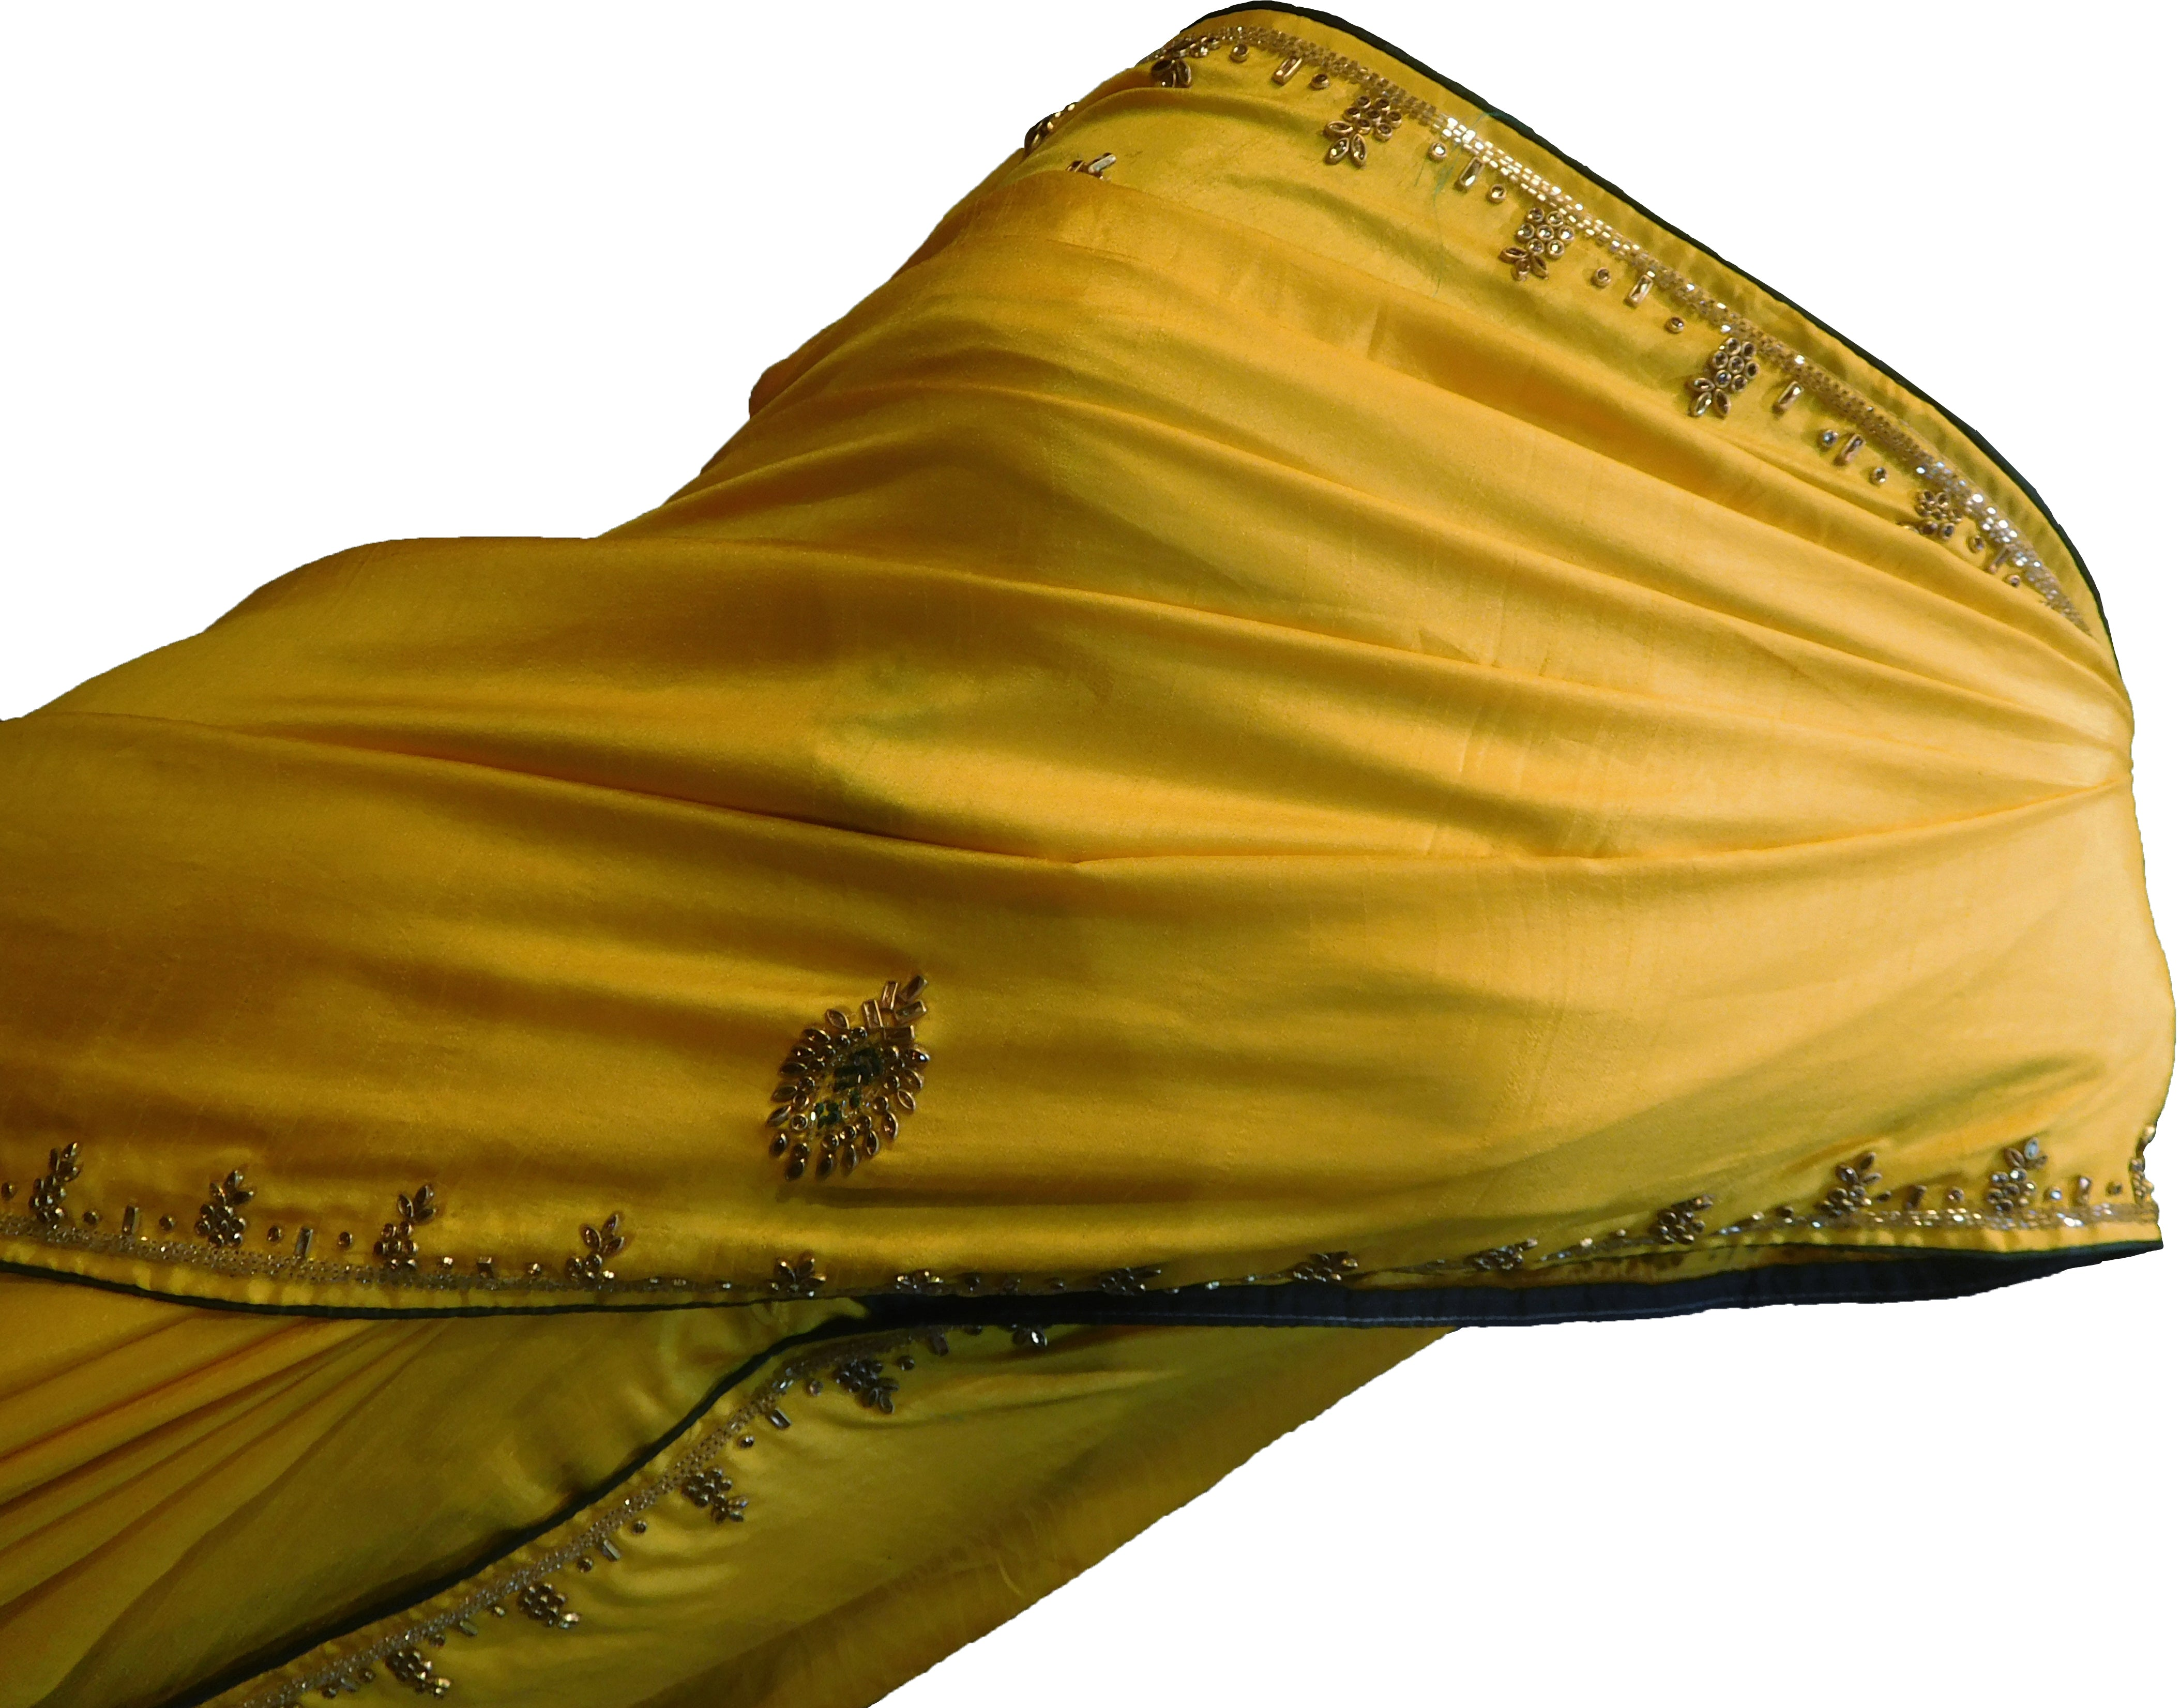 SMSAREE Yellow Designer Wedding Partywear Satin (Silk) Stone Thread & Cutdana Hand Embroidery Work Bridal Saree Sari With Blouse Piece F255